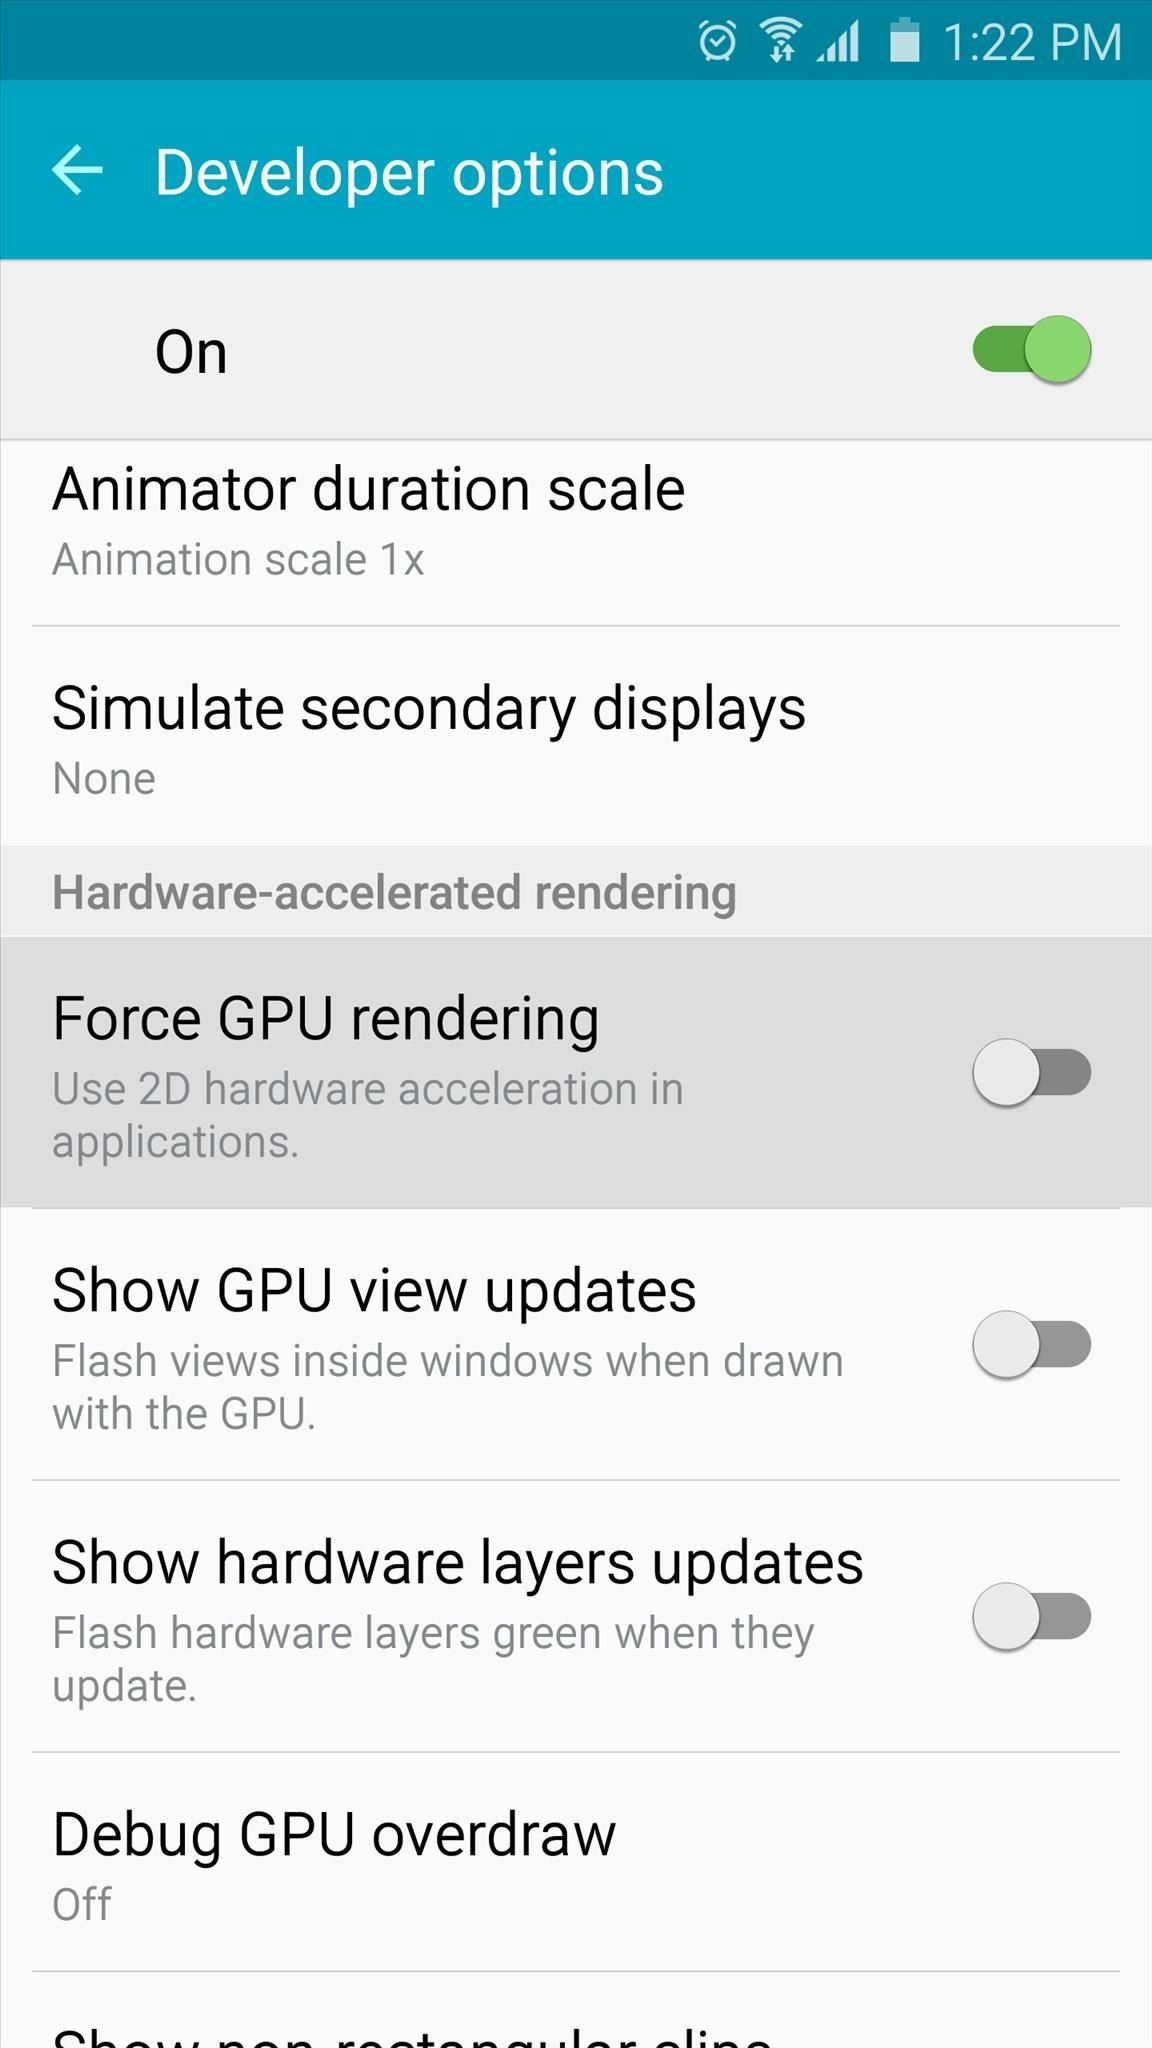 15 Reasons to Unlock Developer Options on Your Android